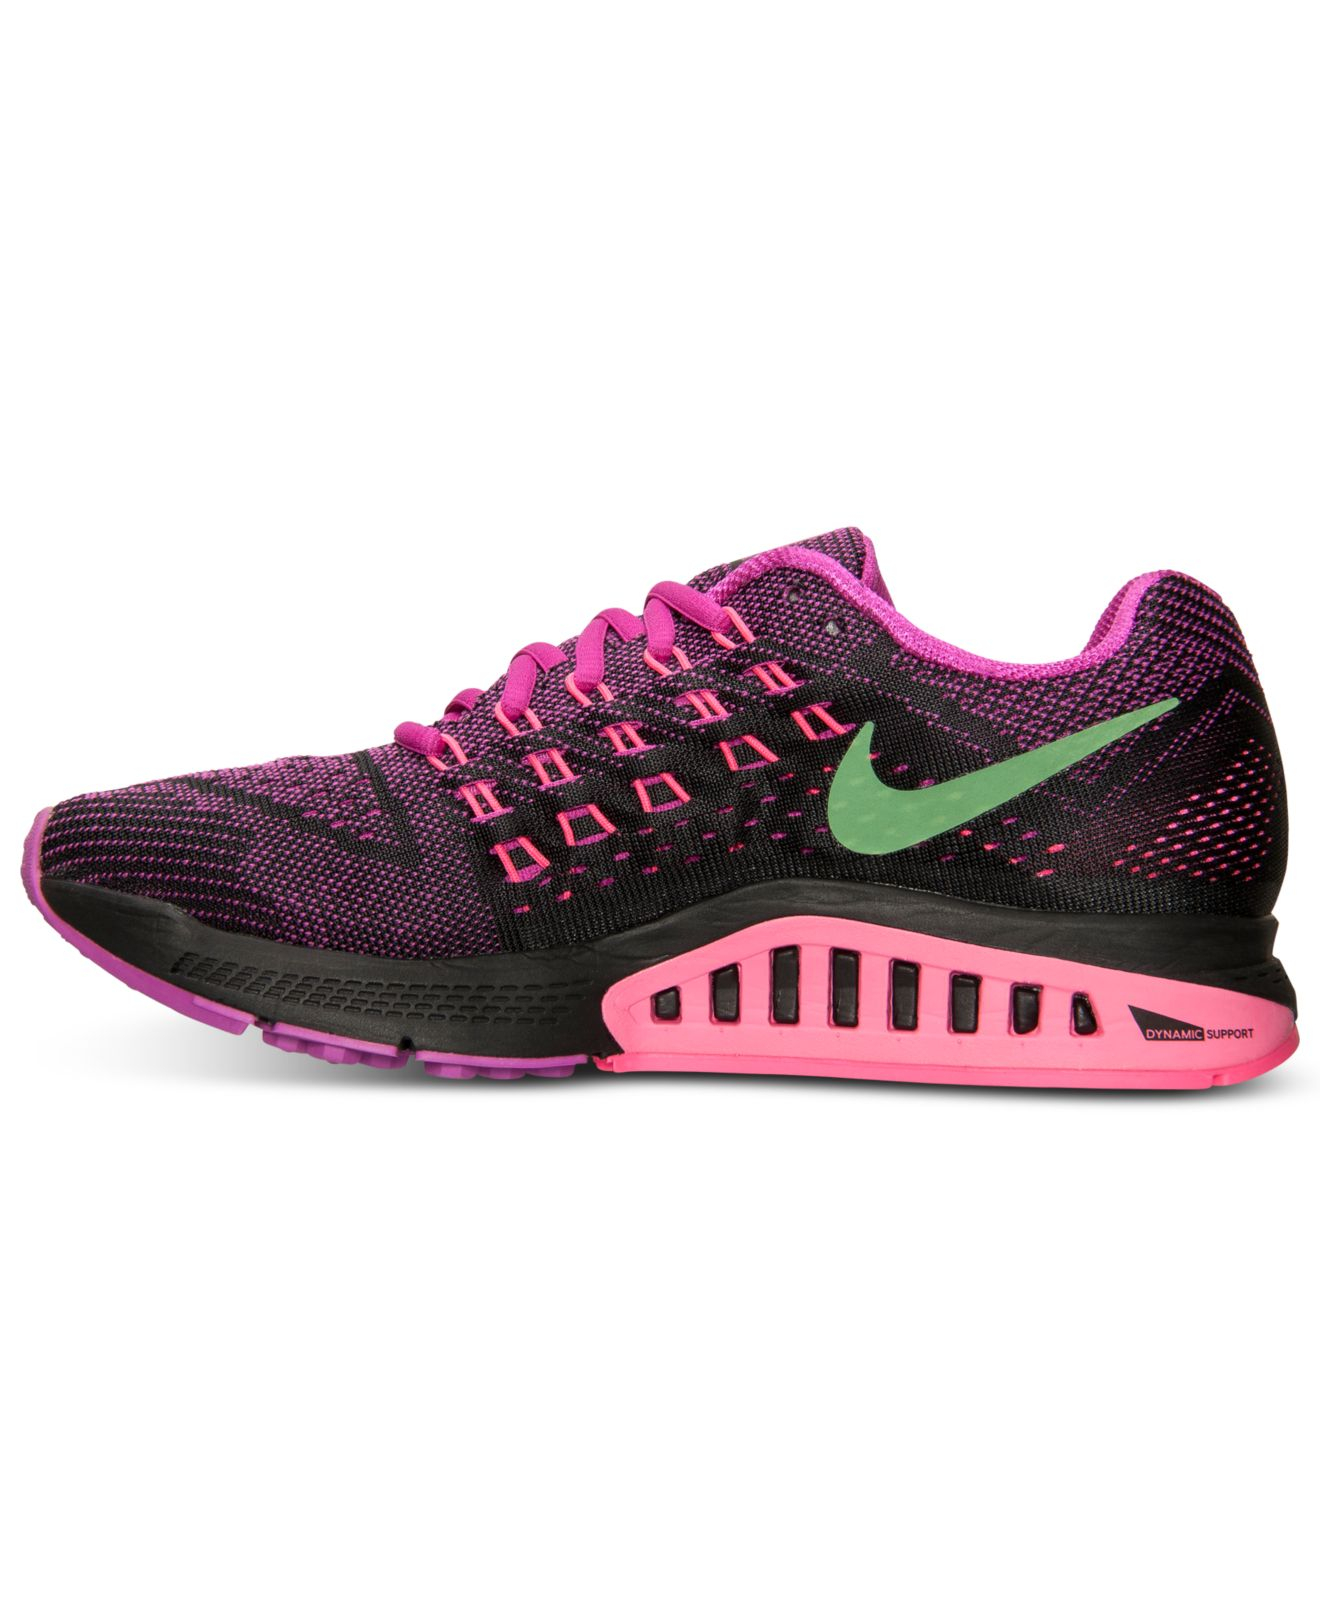 timeless design 8d113 98858 nike zoom structure 18 purple black